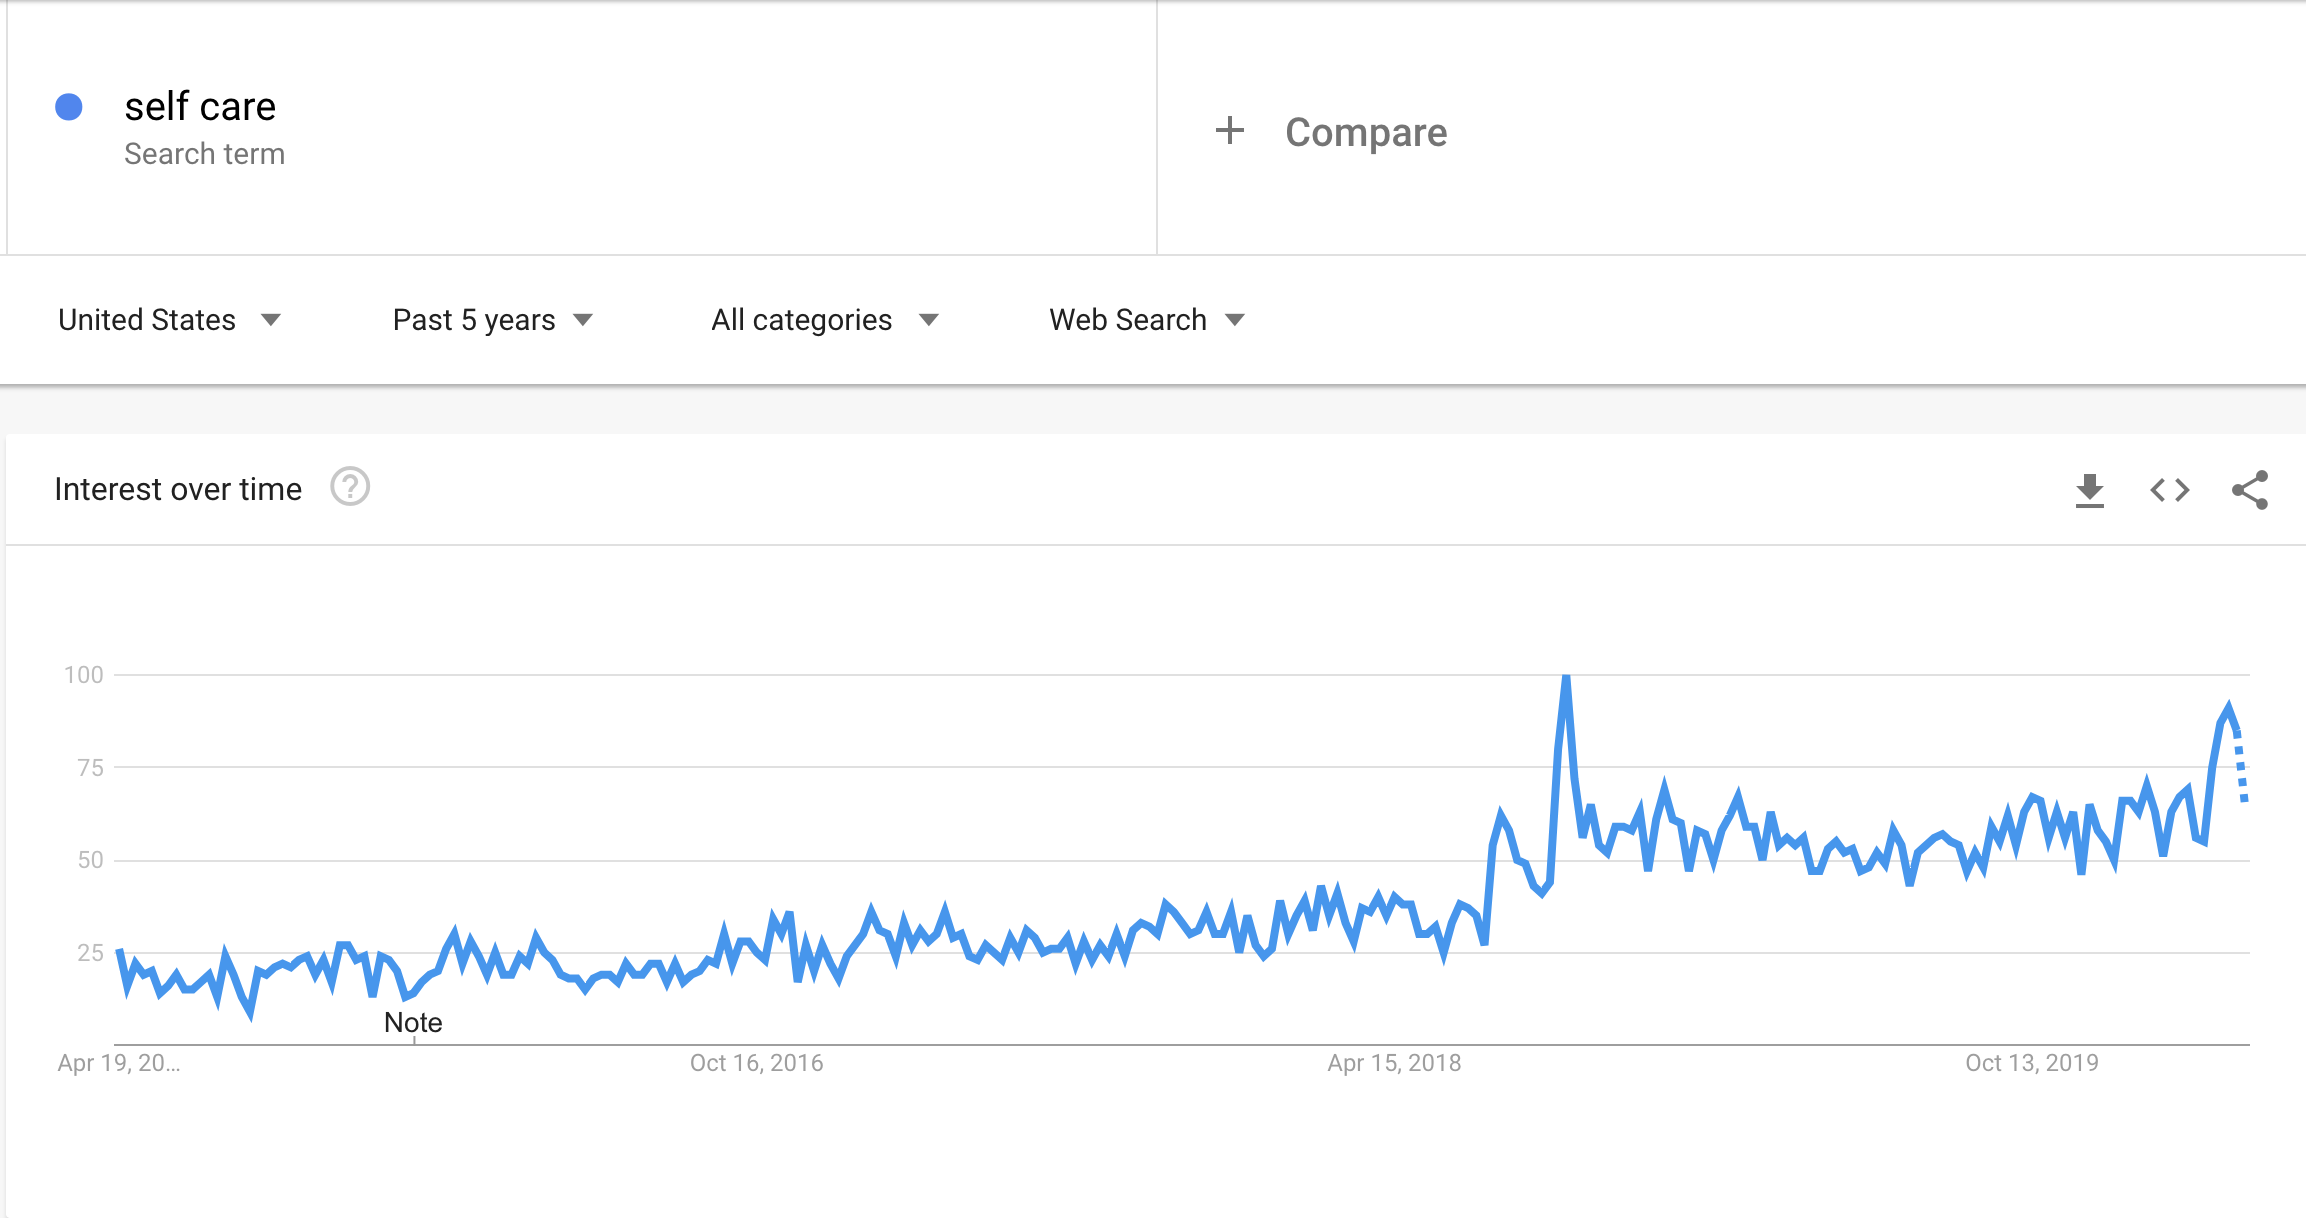 """Search volume for """"self care"""" from April 2015 to April 2020."""